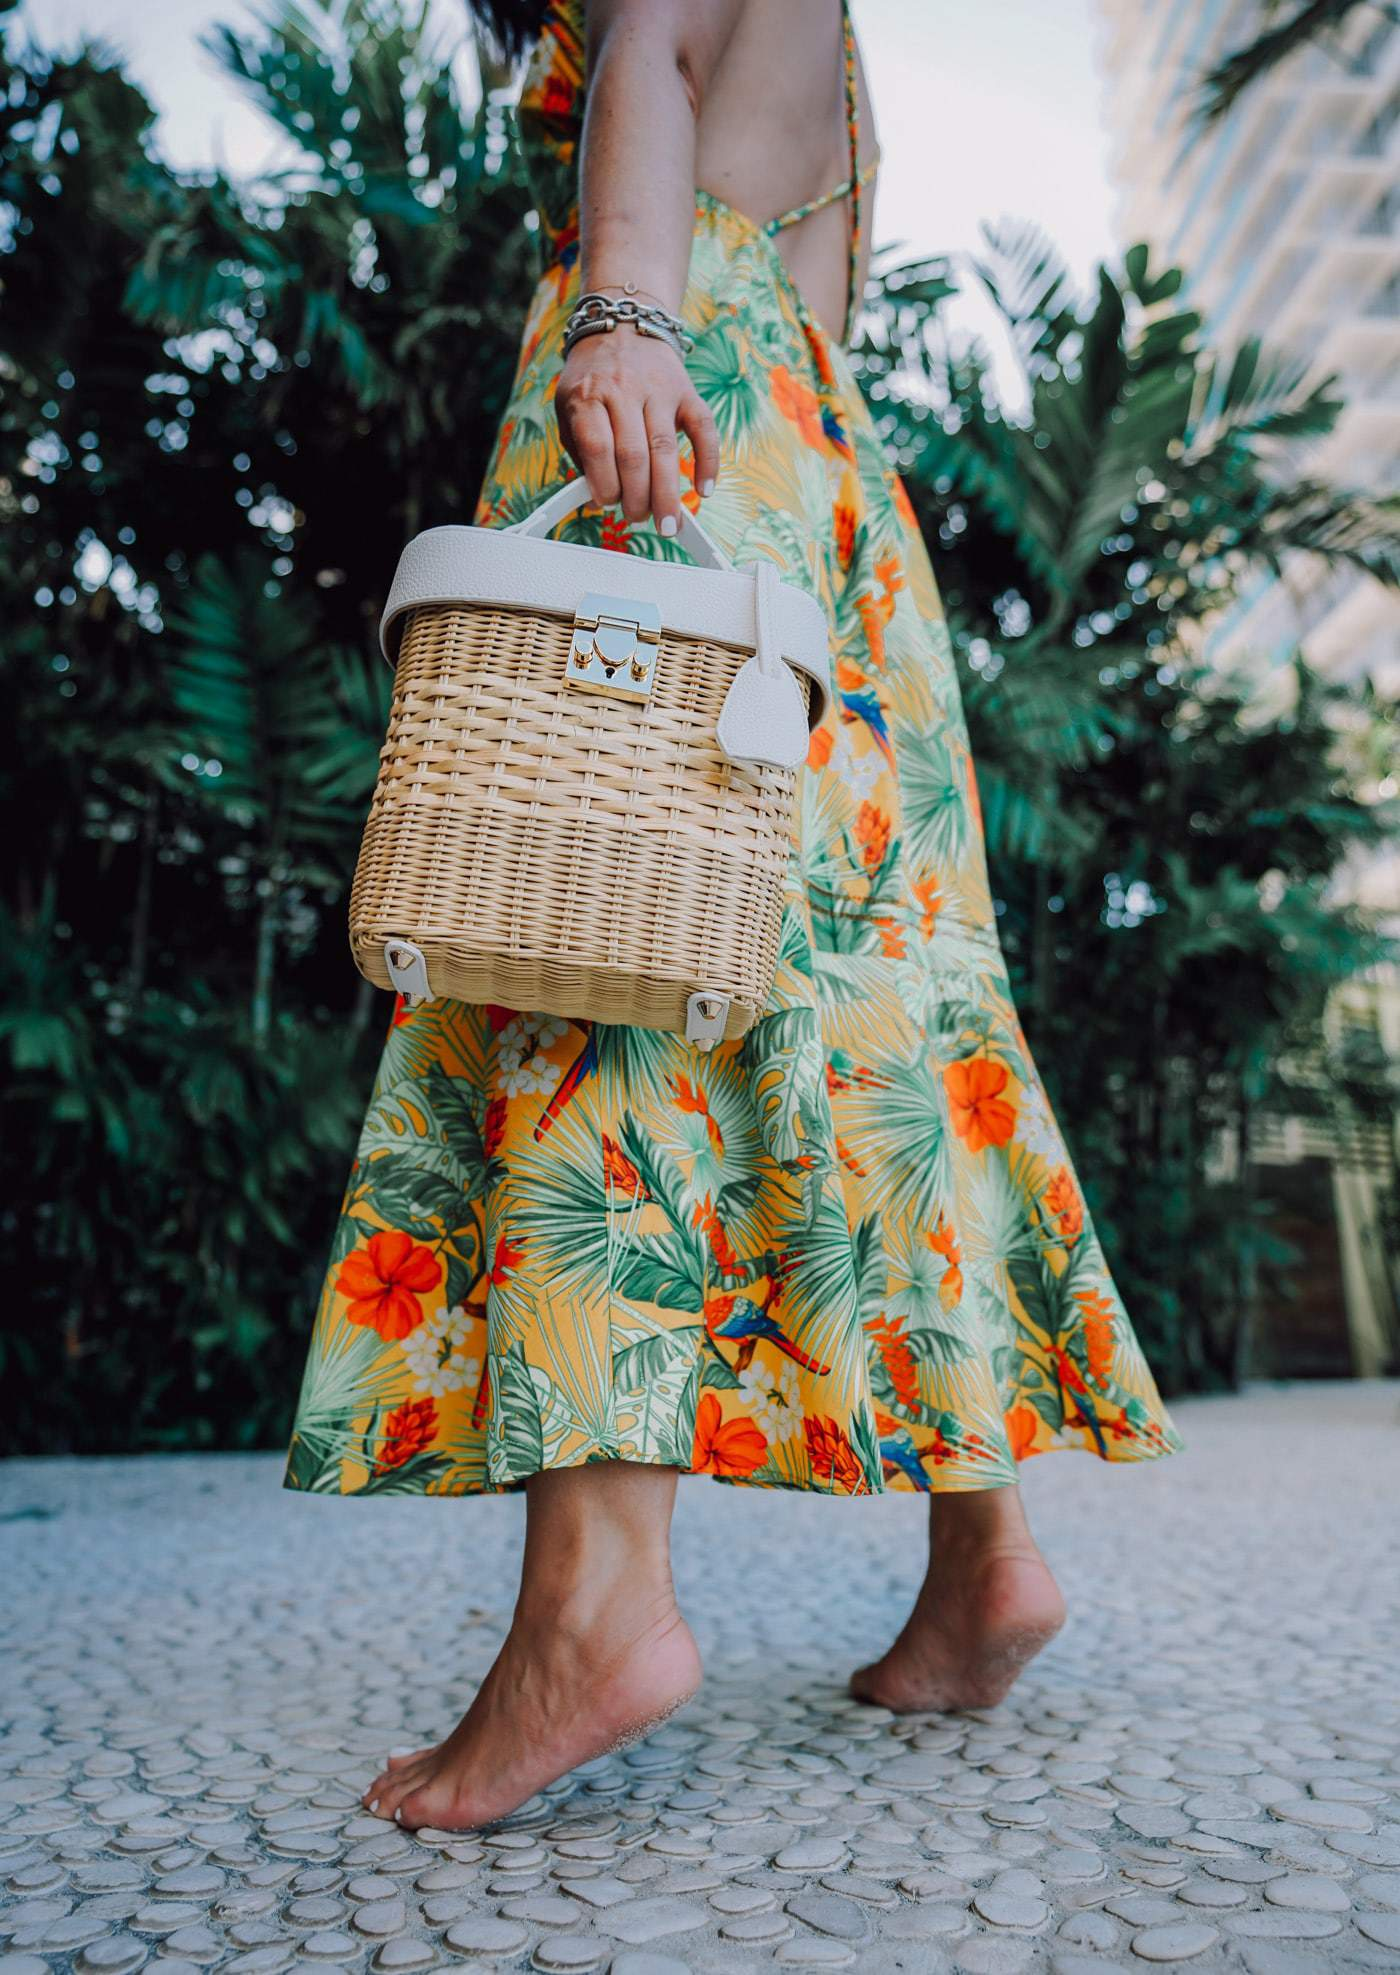 Headed somewhere warm? Us too! Today we're sharing more than 80+ of this seasons must have straw bags. Which is your favorite?